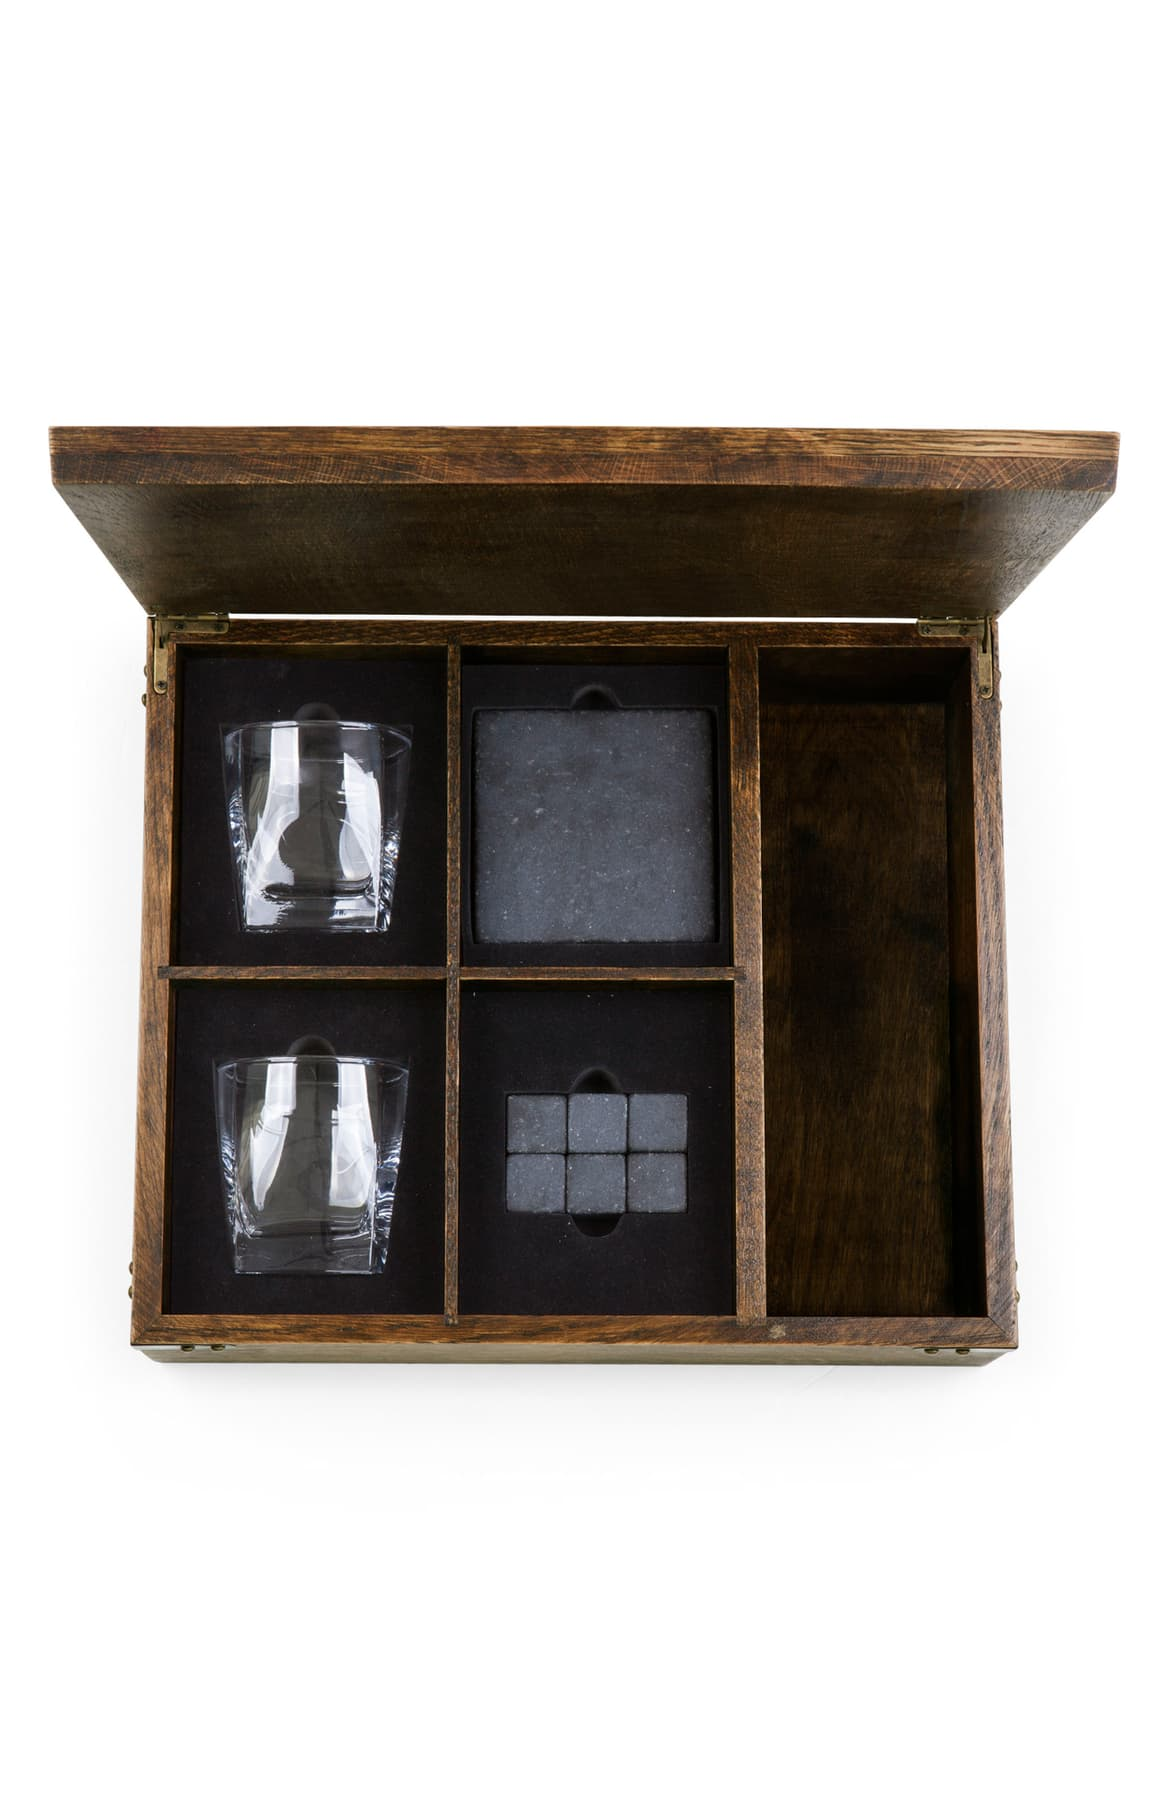 Perfect for the man cave, we love this 11-Piece Whiskey Box Gift Set for $155.95. This complete whiskey set makes a handsome addition to any home bar and includes all the essentials for enjoying your favorite whiskey in style. (Image: Nordstrom)